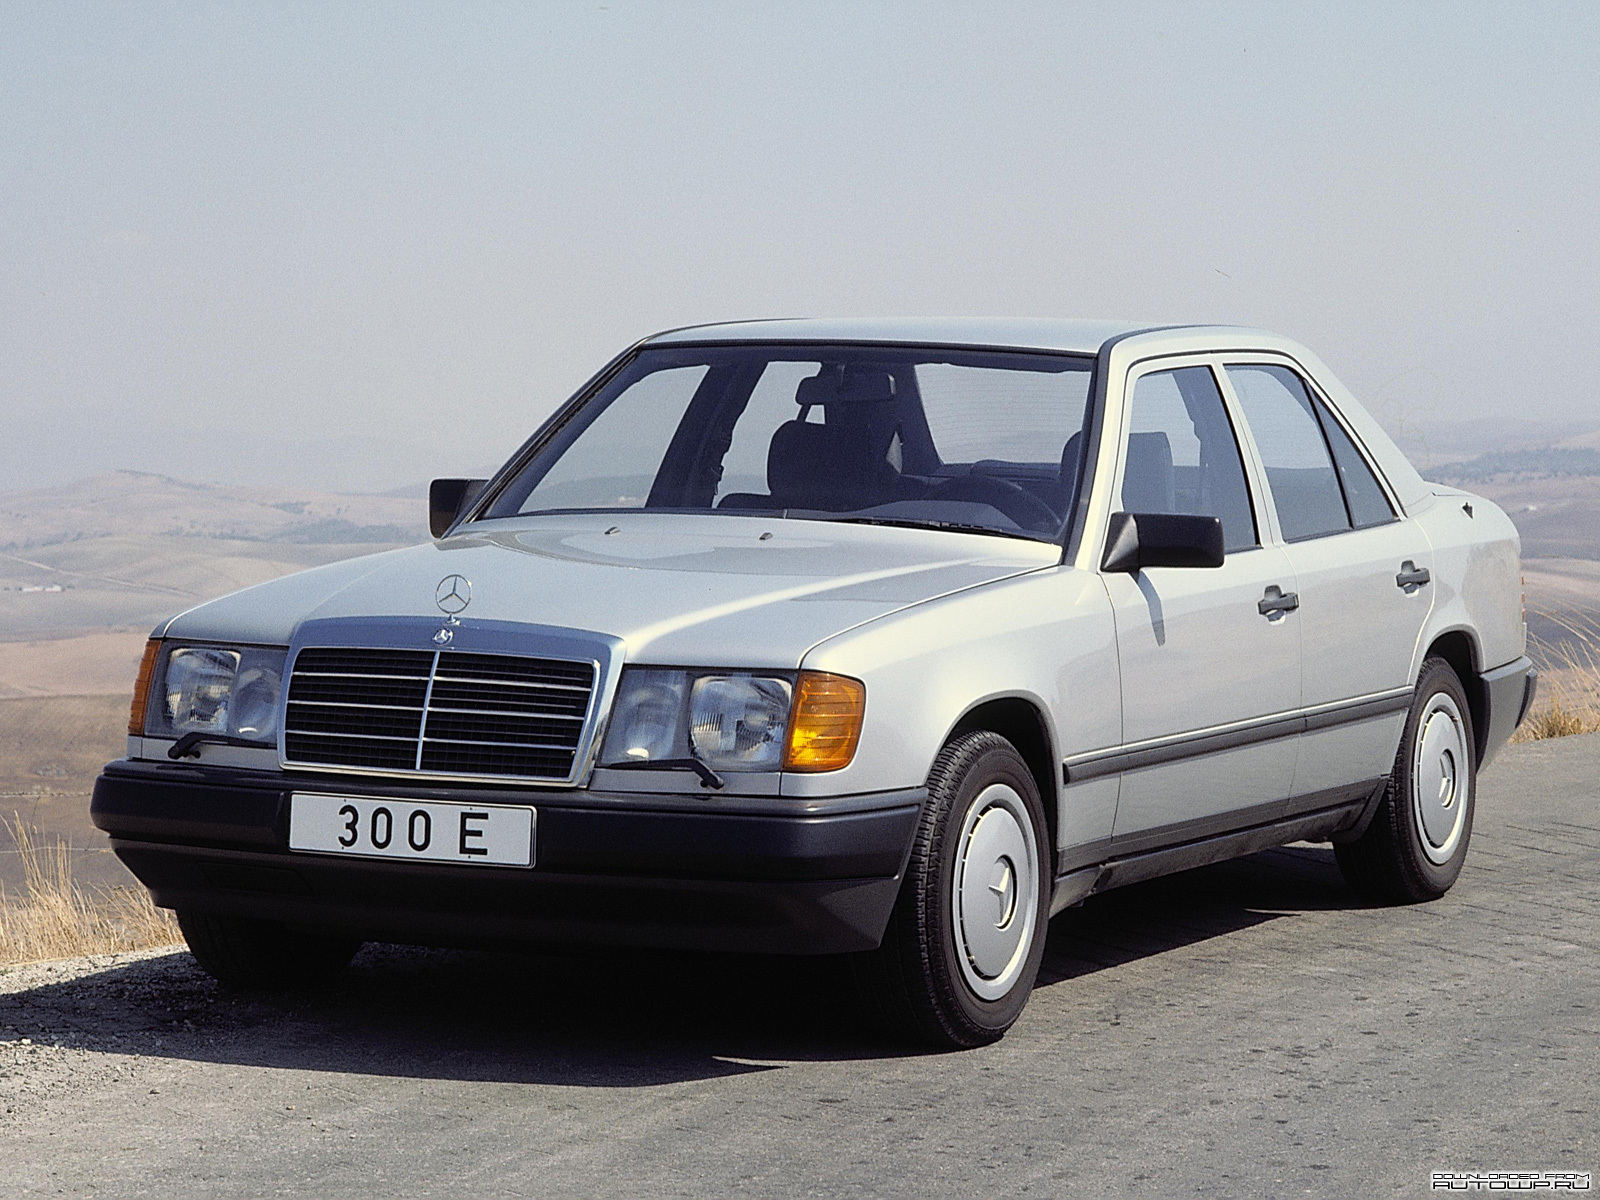 Mercedes benz e class w124 photos photo gallery page 2 for Mercedes benz w